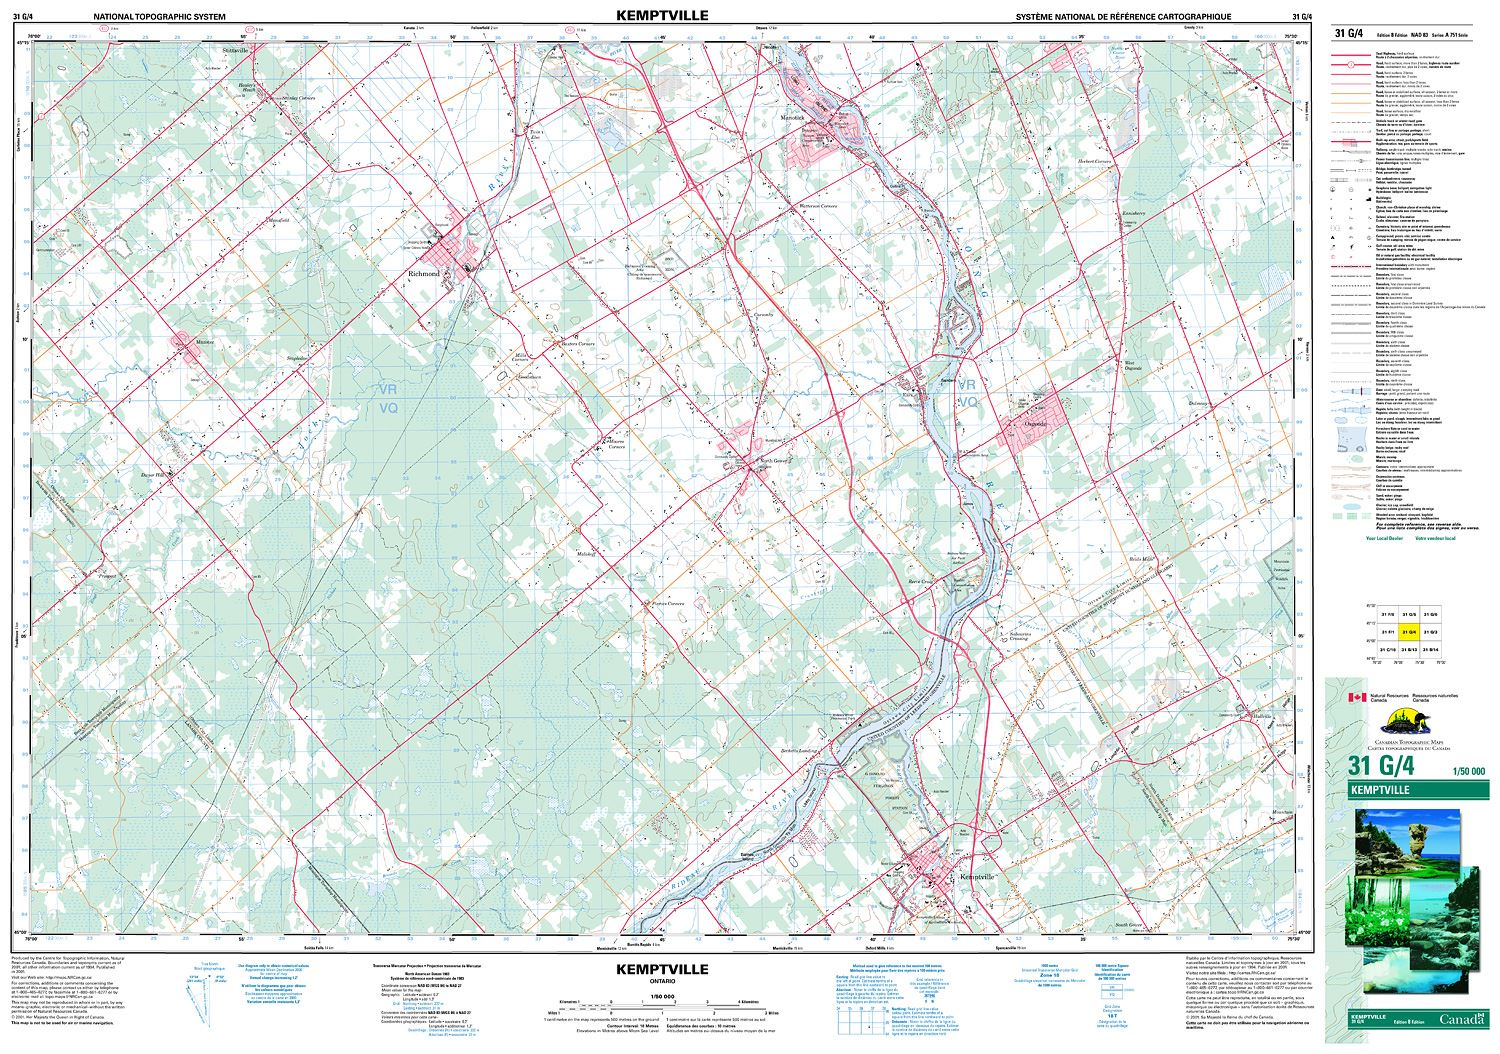 Map Of Kemptville Ontario Canada 031G04   KEMPTVILLE   Topographic Map